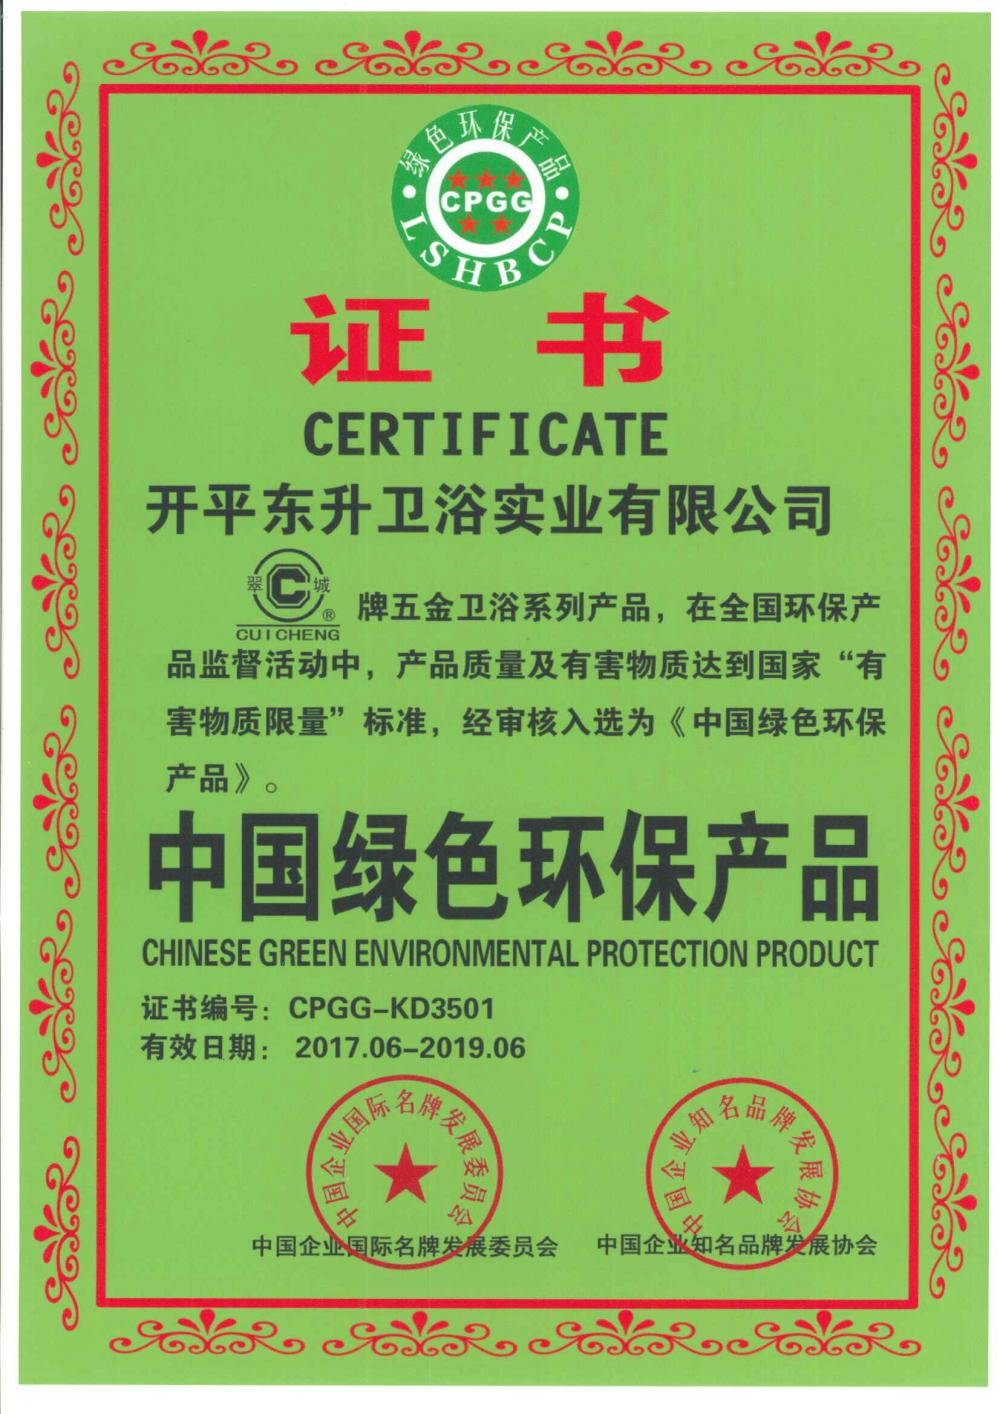 chinese green environmental protection product